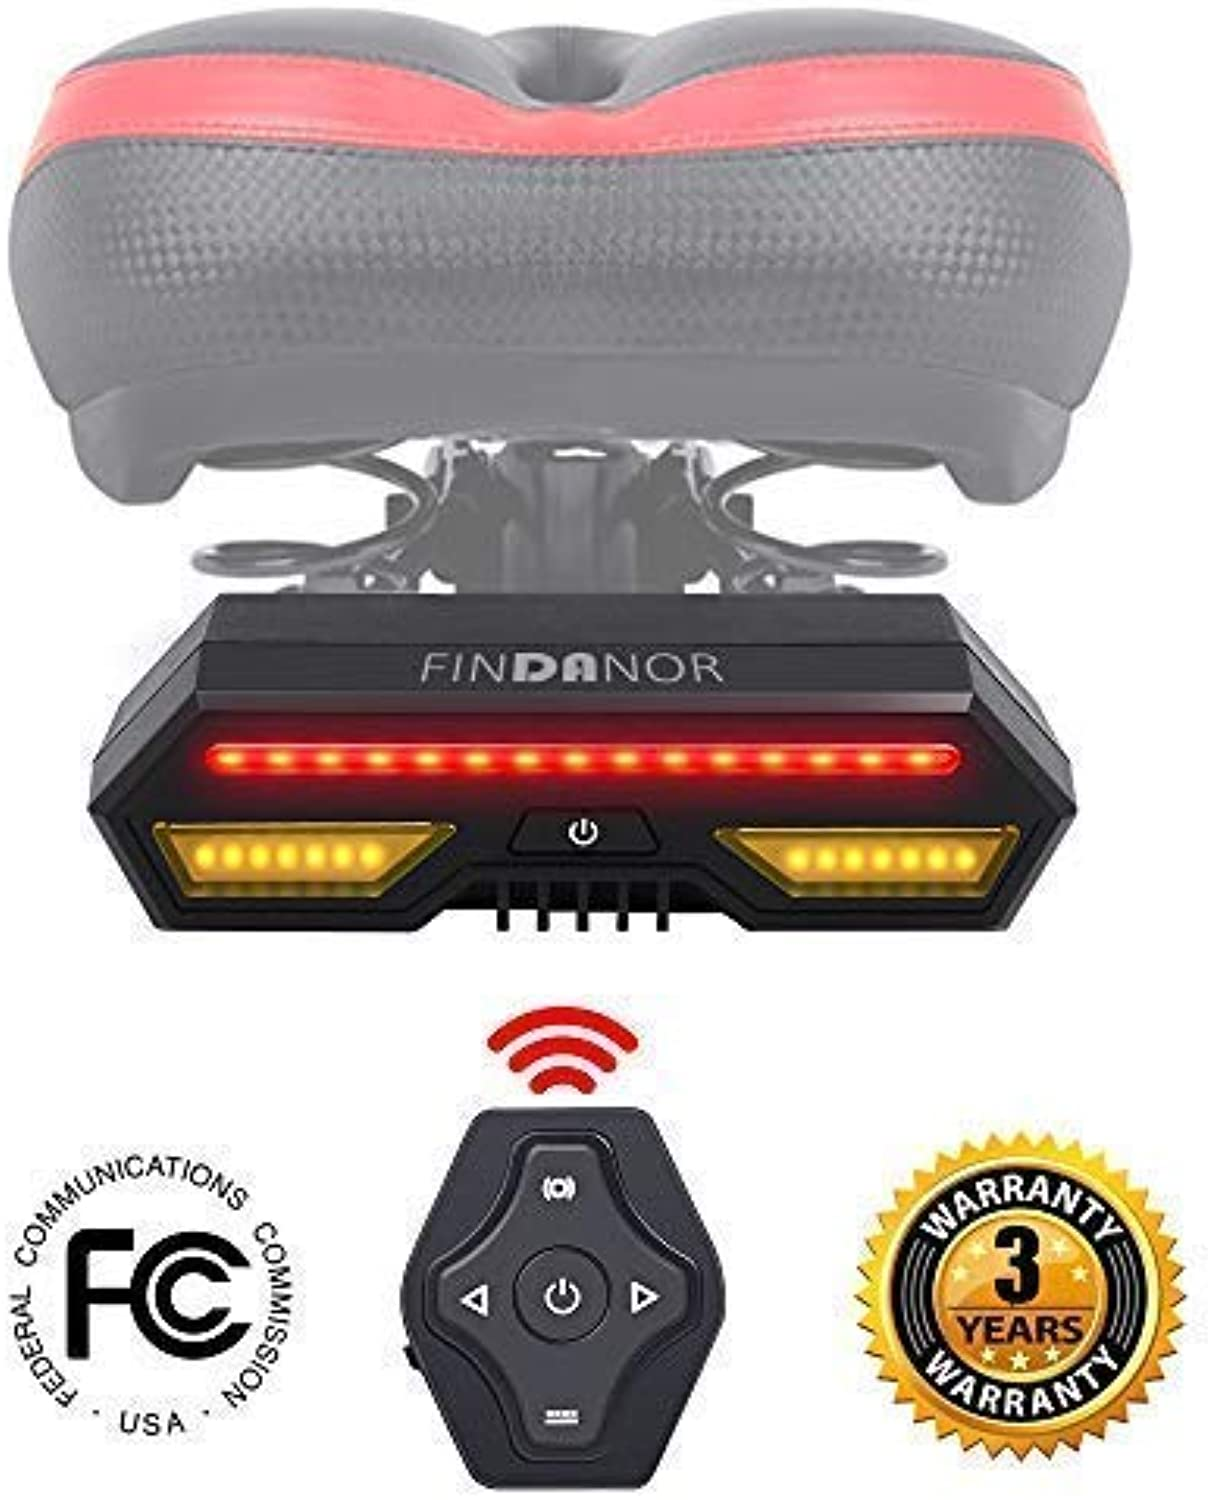 FINDANOR Ultra Bright LED Bike Tail Light with Turn SignalsWireless Remote Control Bicycle Tail LightSafety Brake Lights and Warning Light2200mAh USB Rechargeable Bike TaillightsWaterproof IPX4